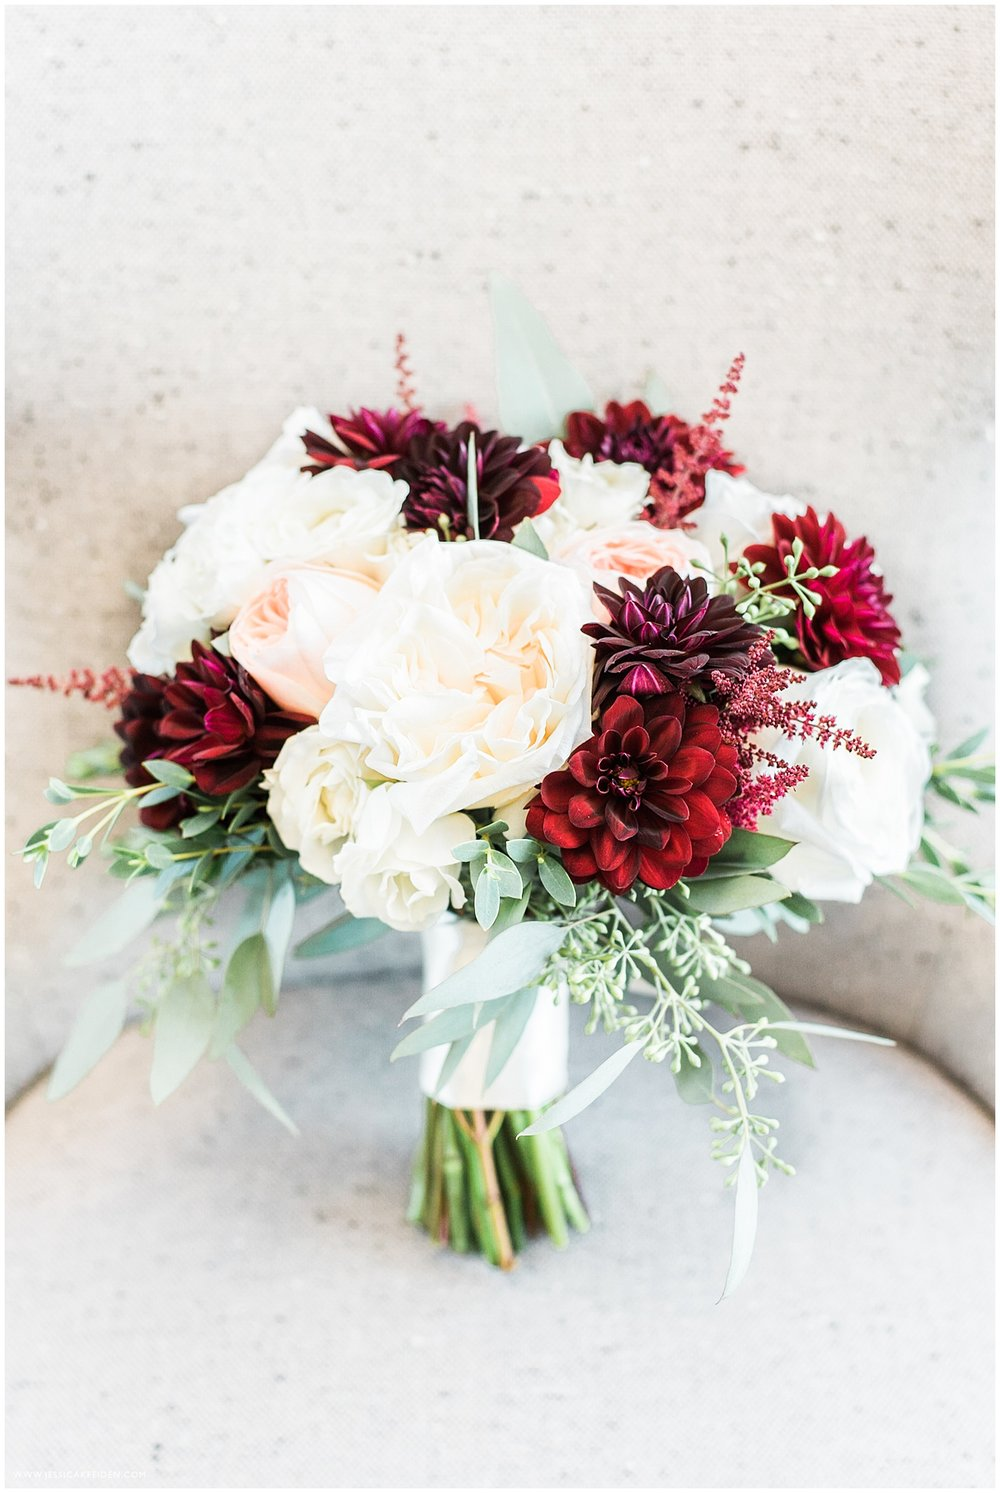 Jessica K Feiden Photography_Top 5 Things to Have Ready for Your Wedding Photographer_0013.jpg